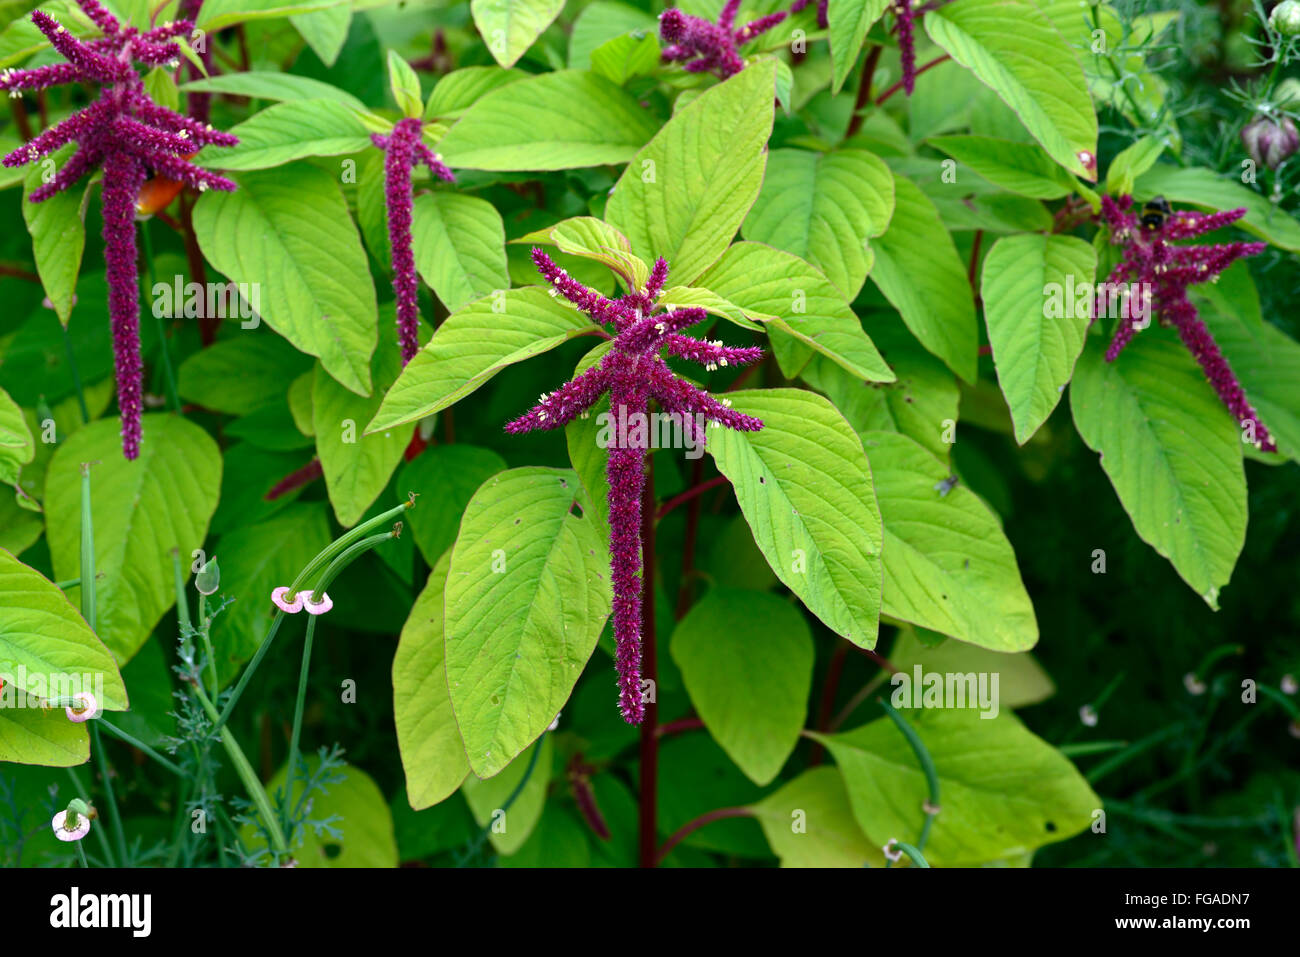 amaranthus caudatus red octopus flowering love lies bleeding flower bloom blossom red color colour inflorescence - Stock Image